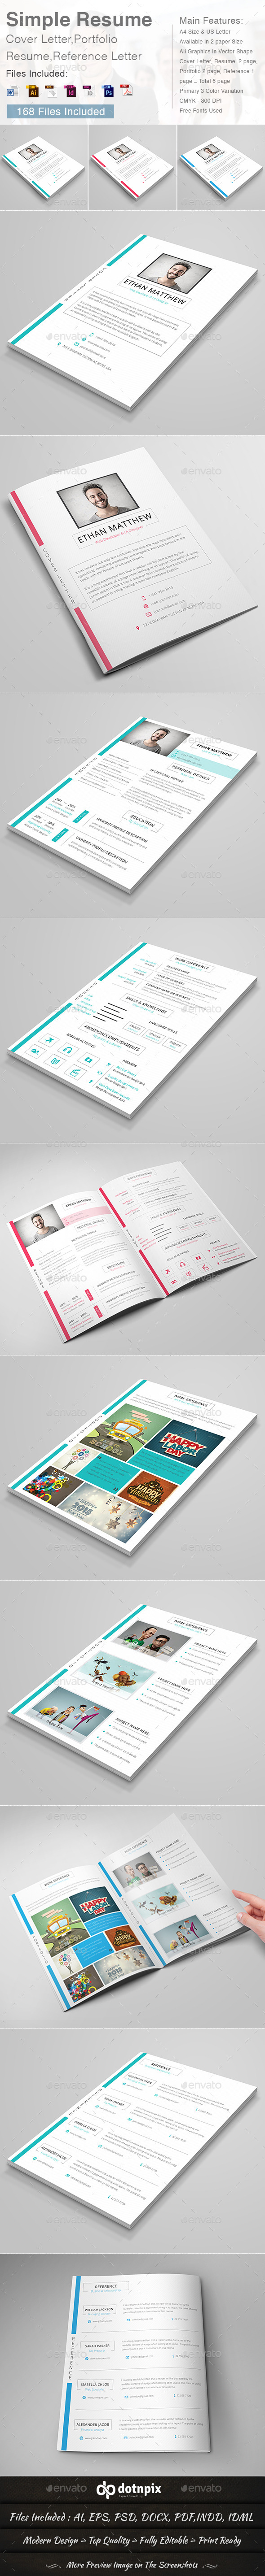 GraphicRiver Simple Resume 10035864